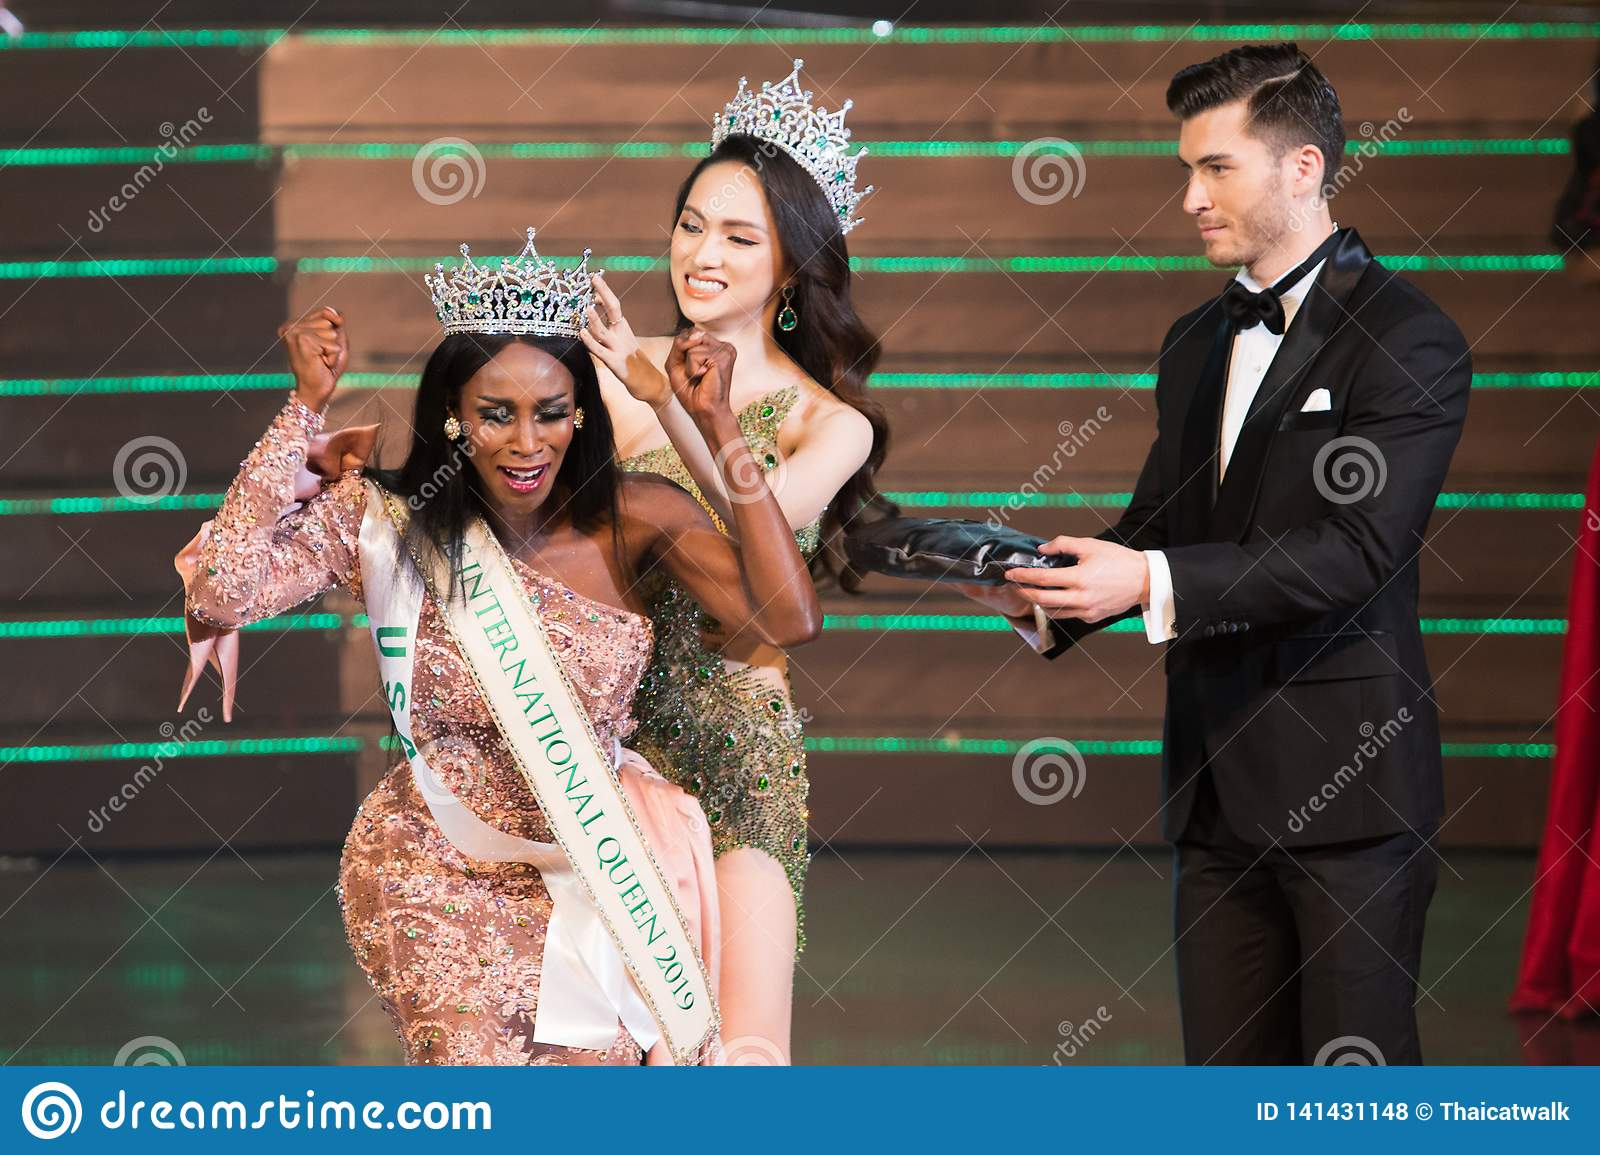 Miss International Queen Final Round Editorial Stock Photo - Image